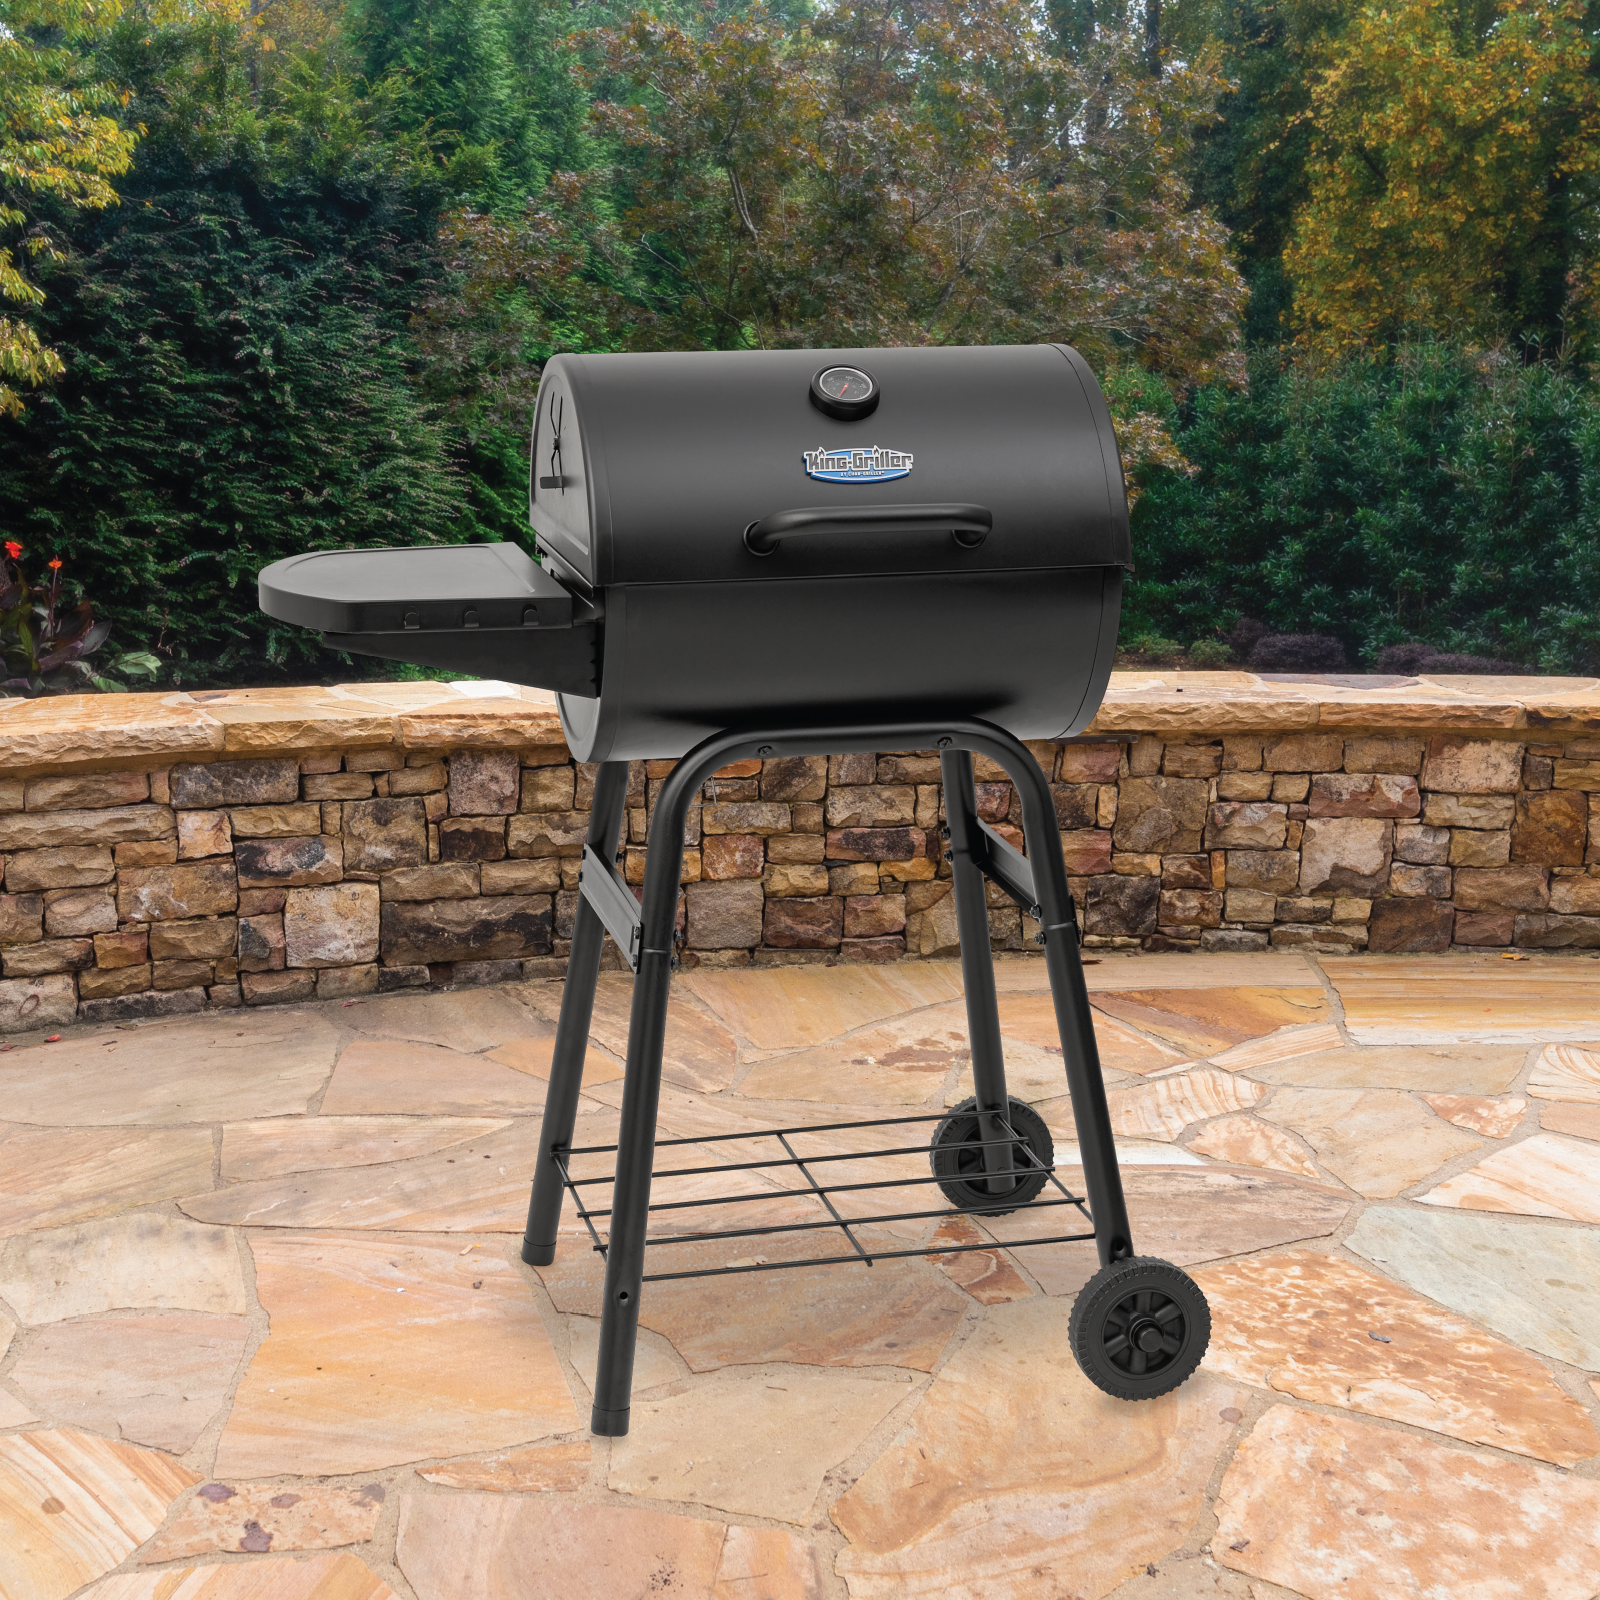 King-Griller Gambler™ Barrel Style Charcoal Grill